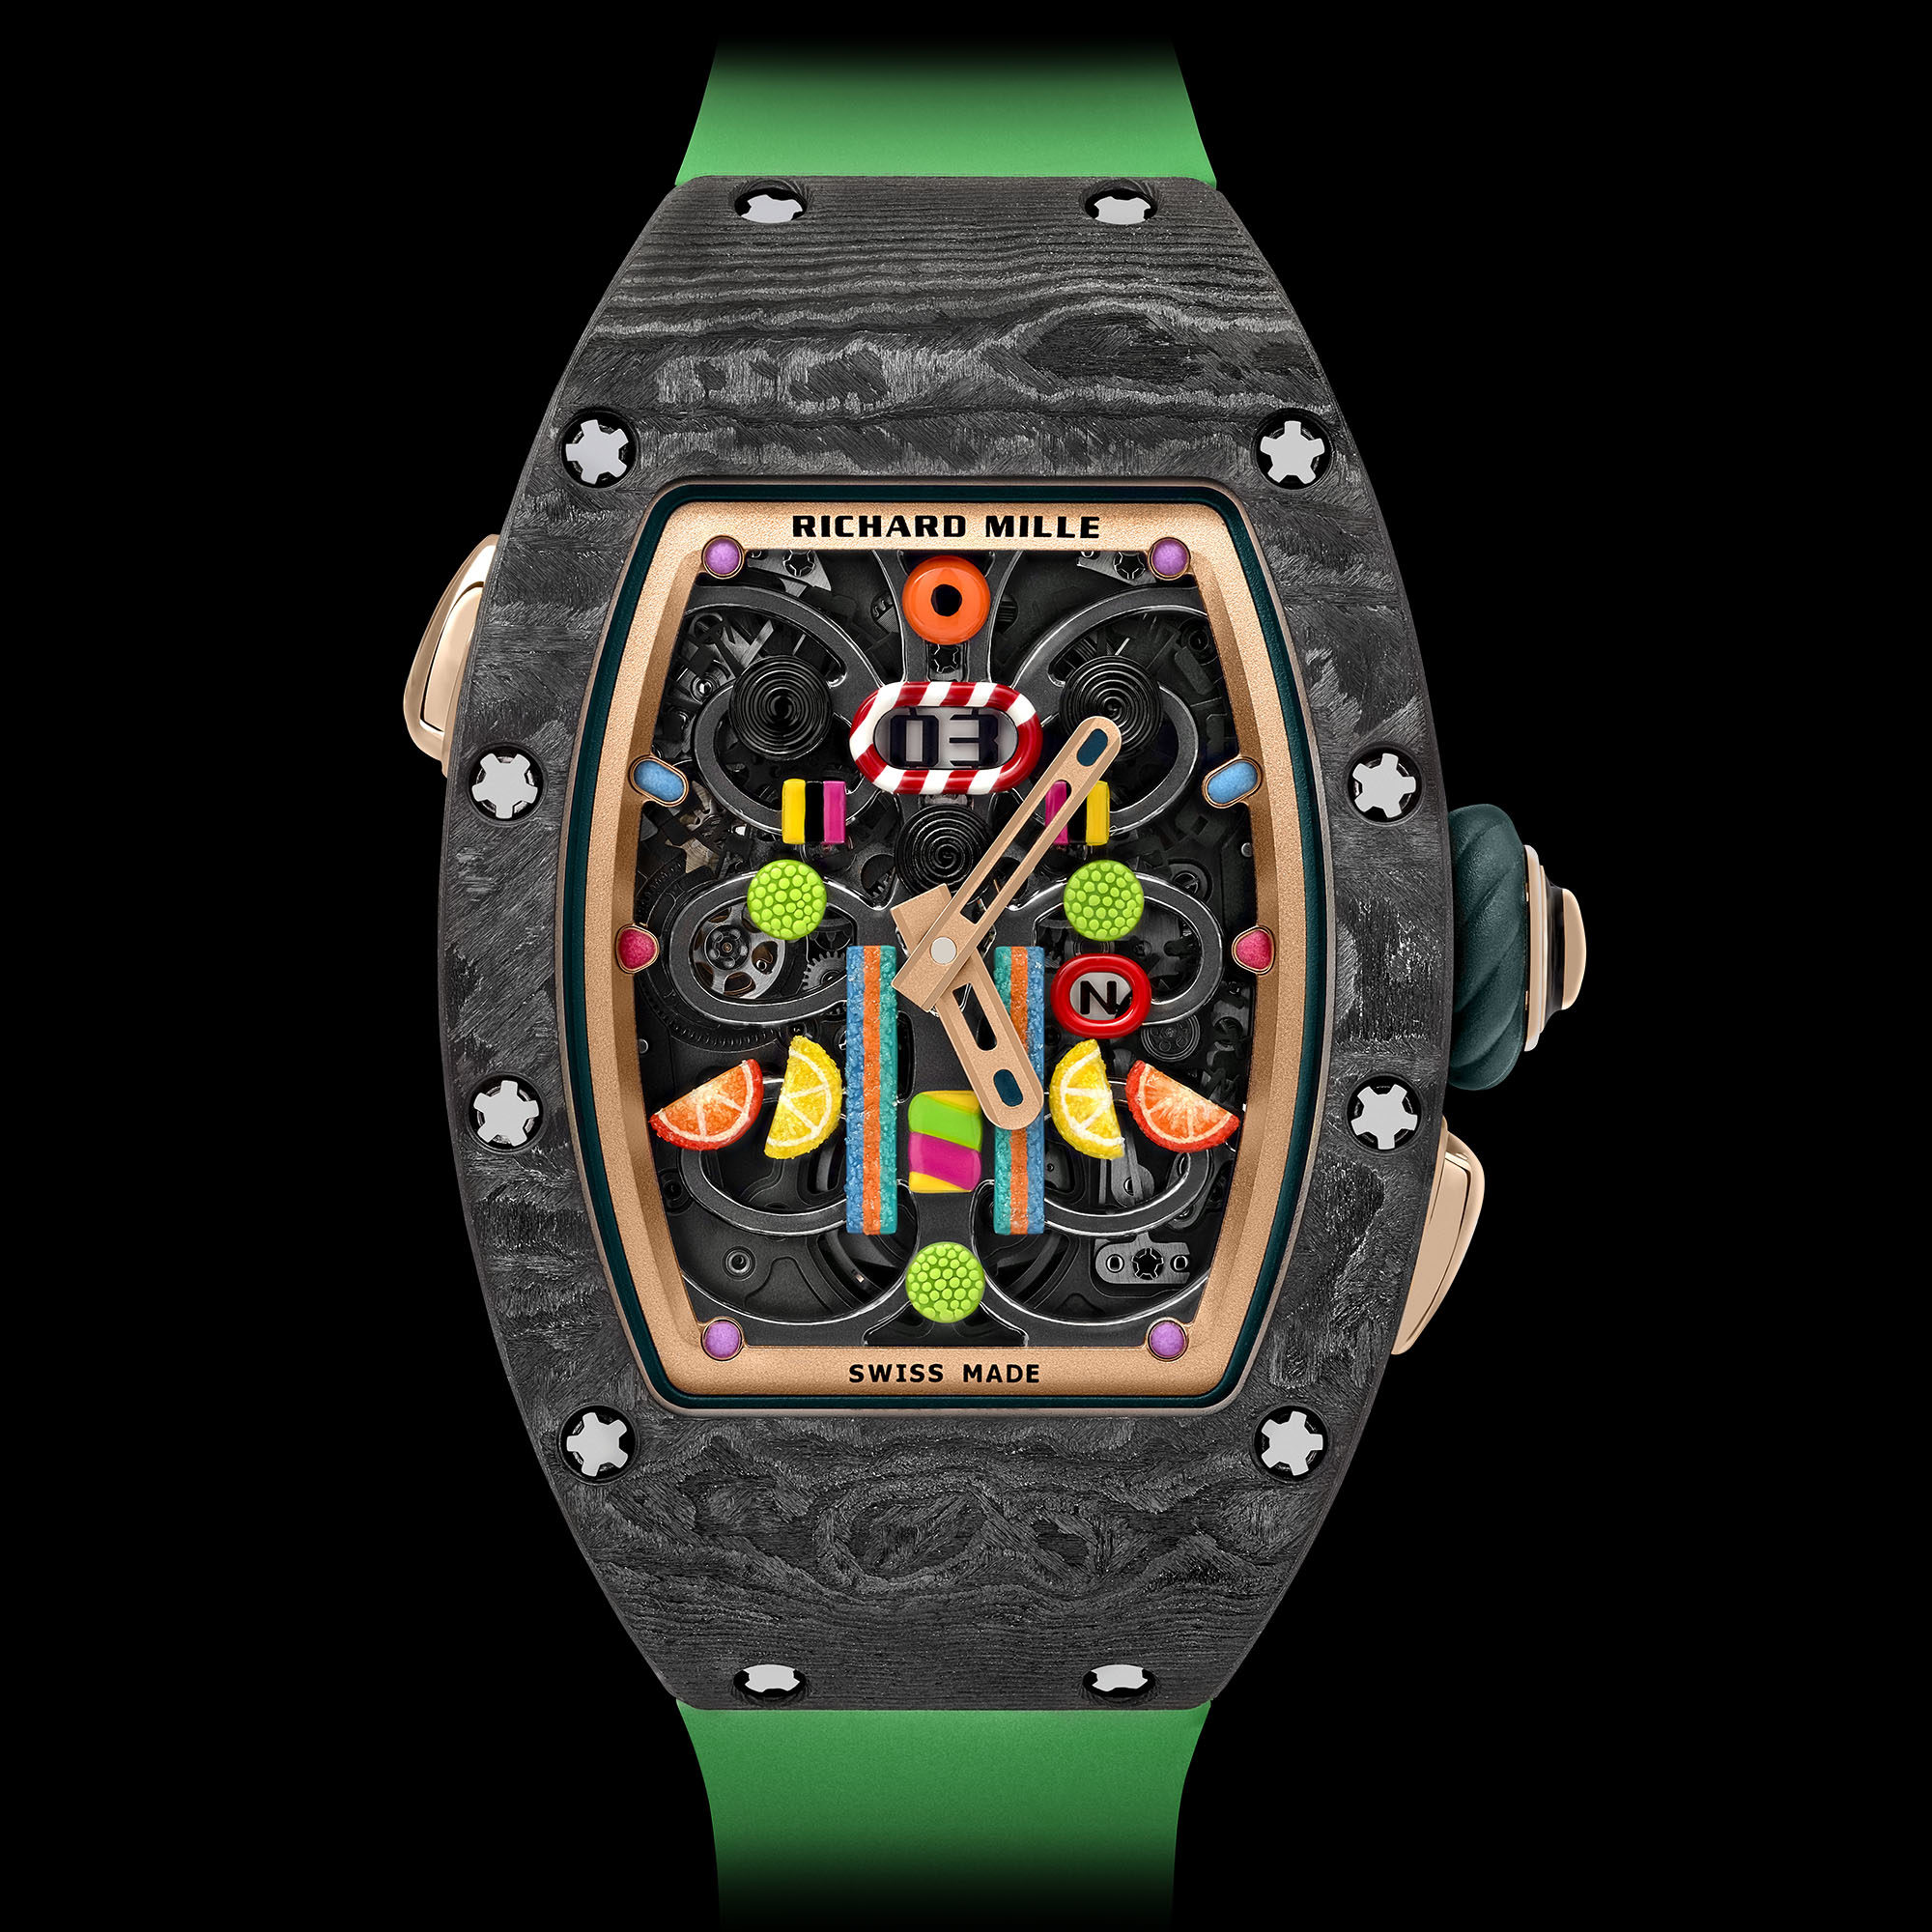 Richard Mille Rm 37 01 Automatic Kiwi Richard Mille